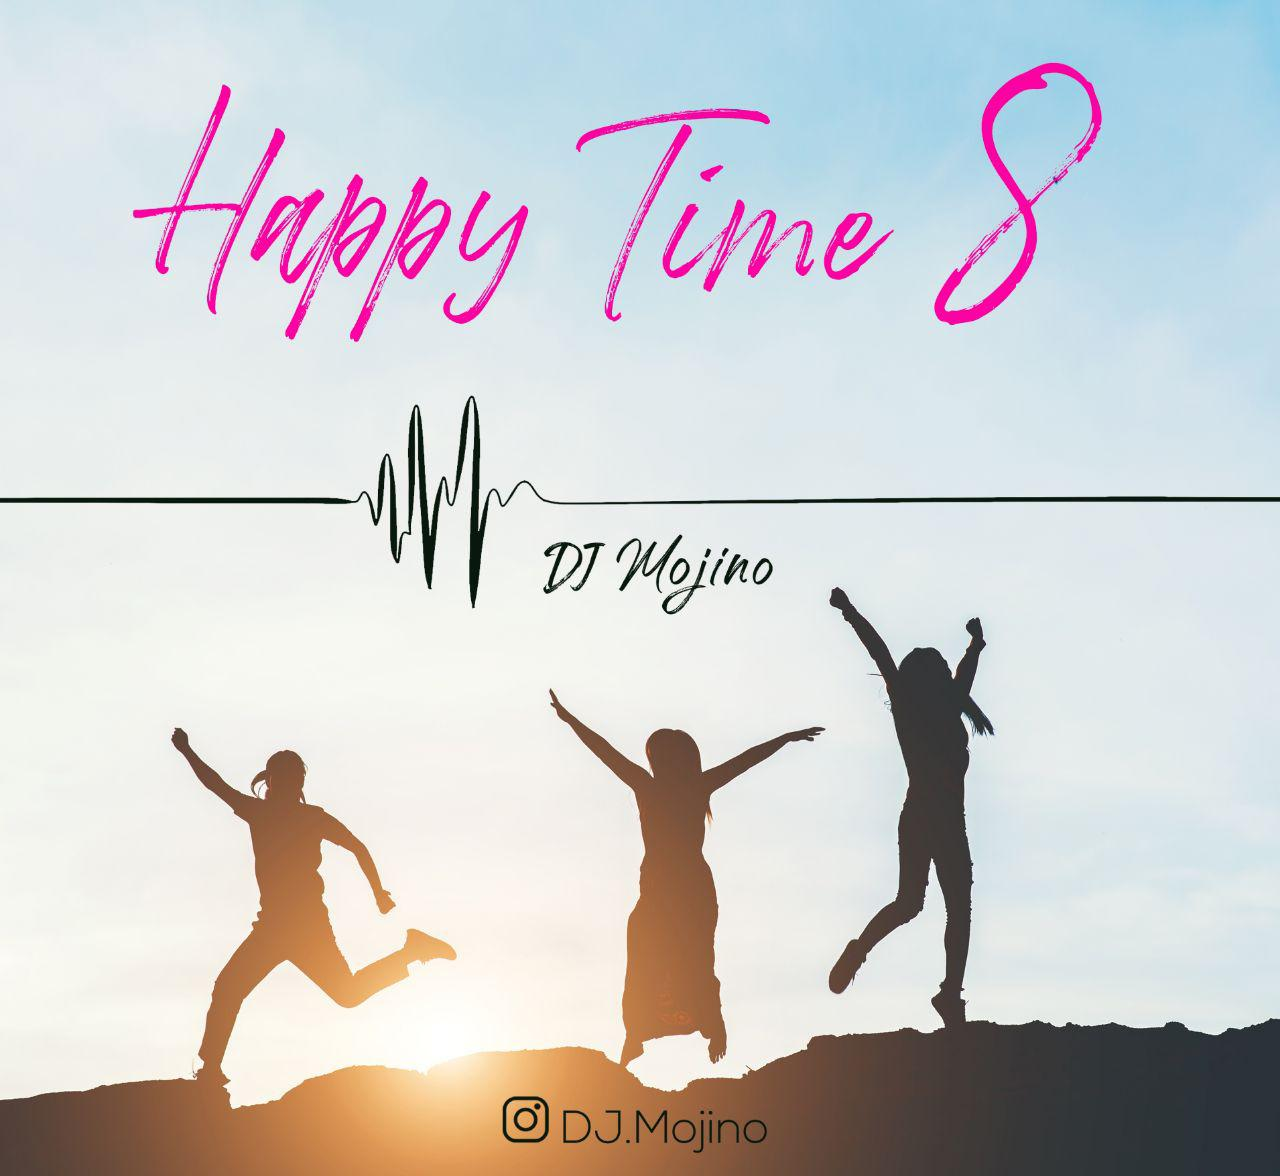 دیجی مجینو Happy Time 08